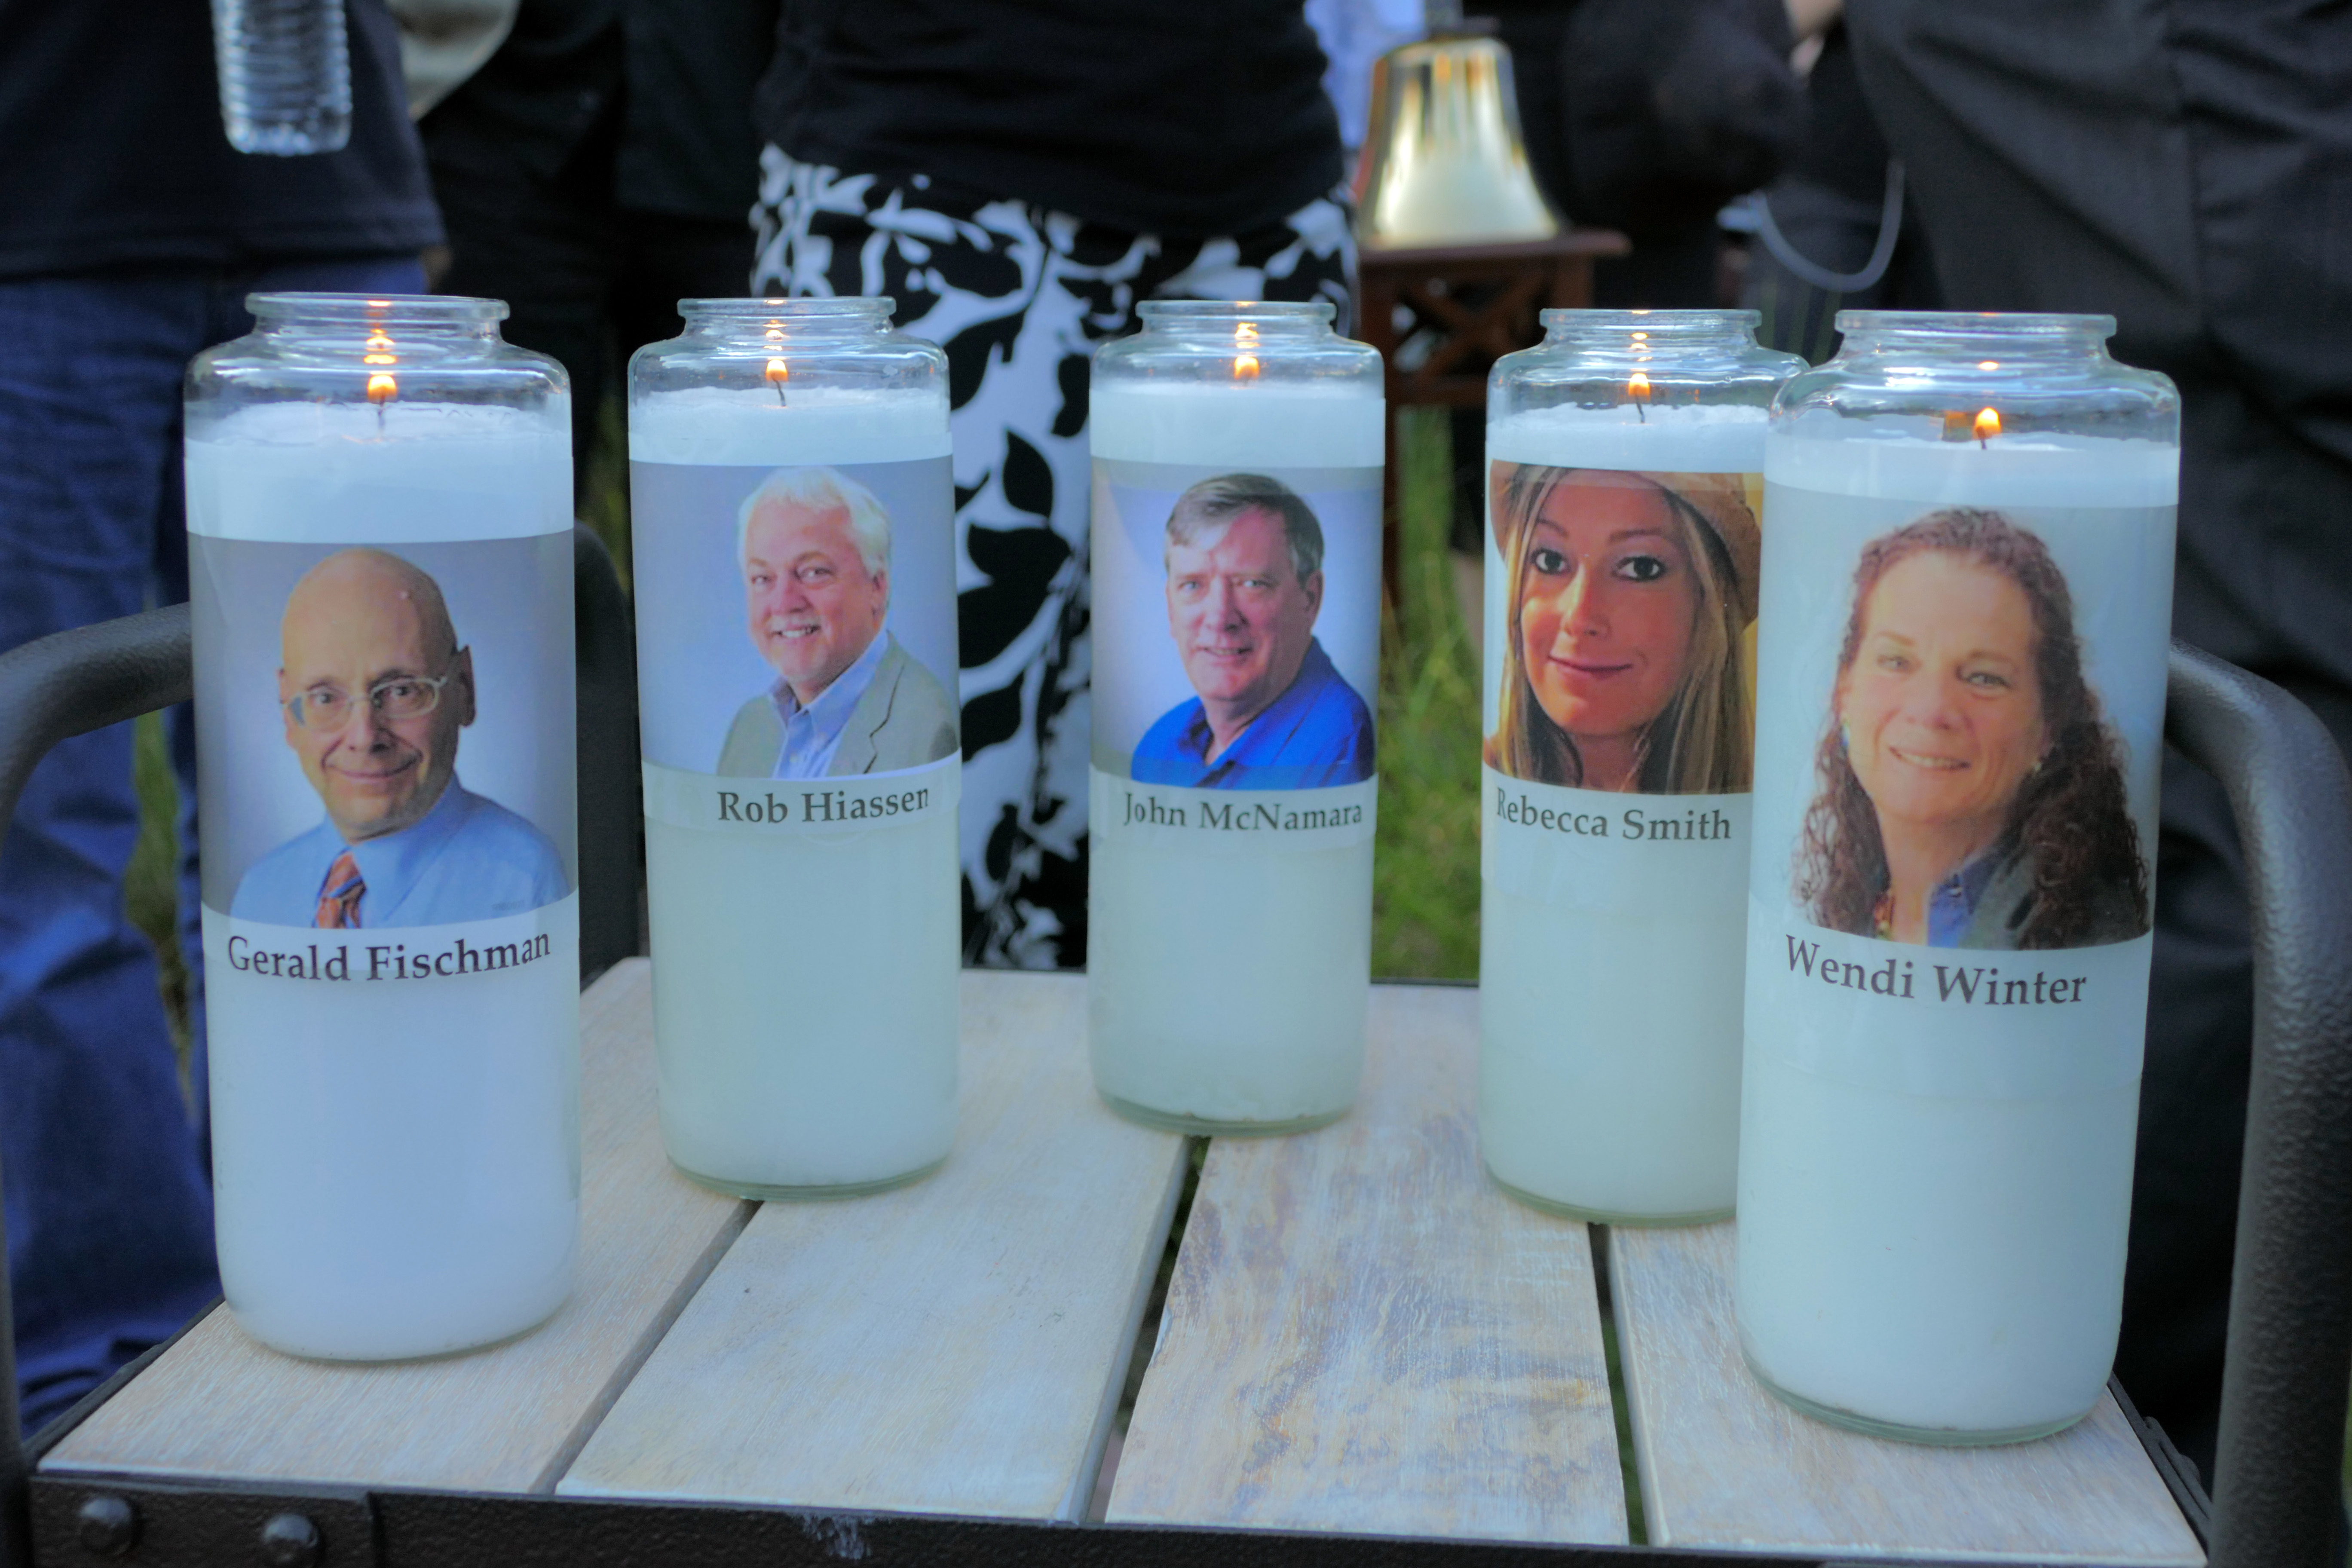 Candles honoring Gerald Fischman, Rob Hiassen, John McNamara, Rebecca Smith, and Wendi Winters flicker as the sun sets during a candlelight vigil on Friday, June 29, 2018, at Annapolis Mall for the five Capital Gazette employees slain during a shooting spree in their newsroom.